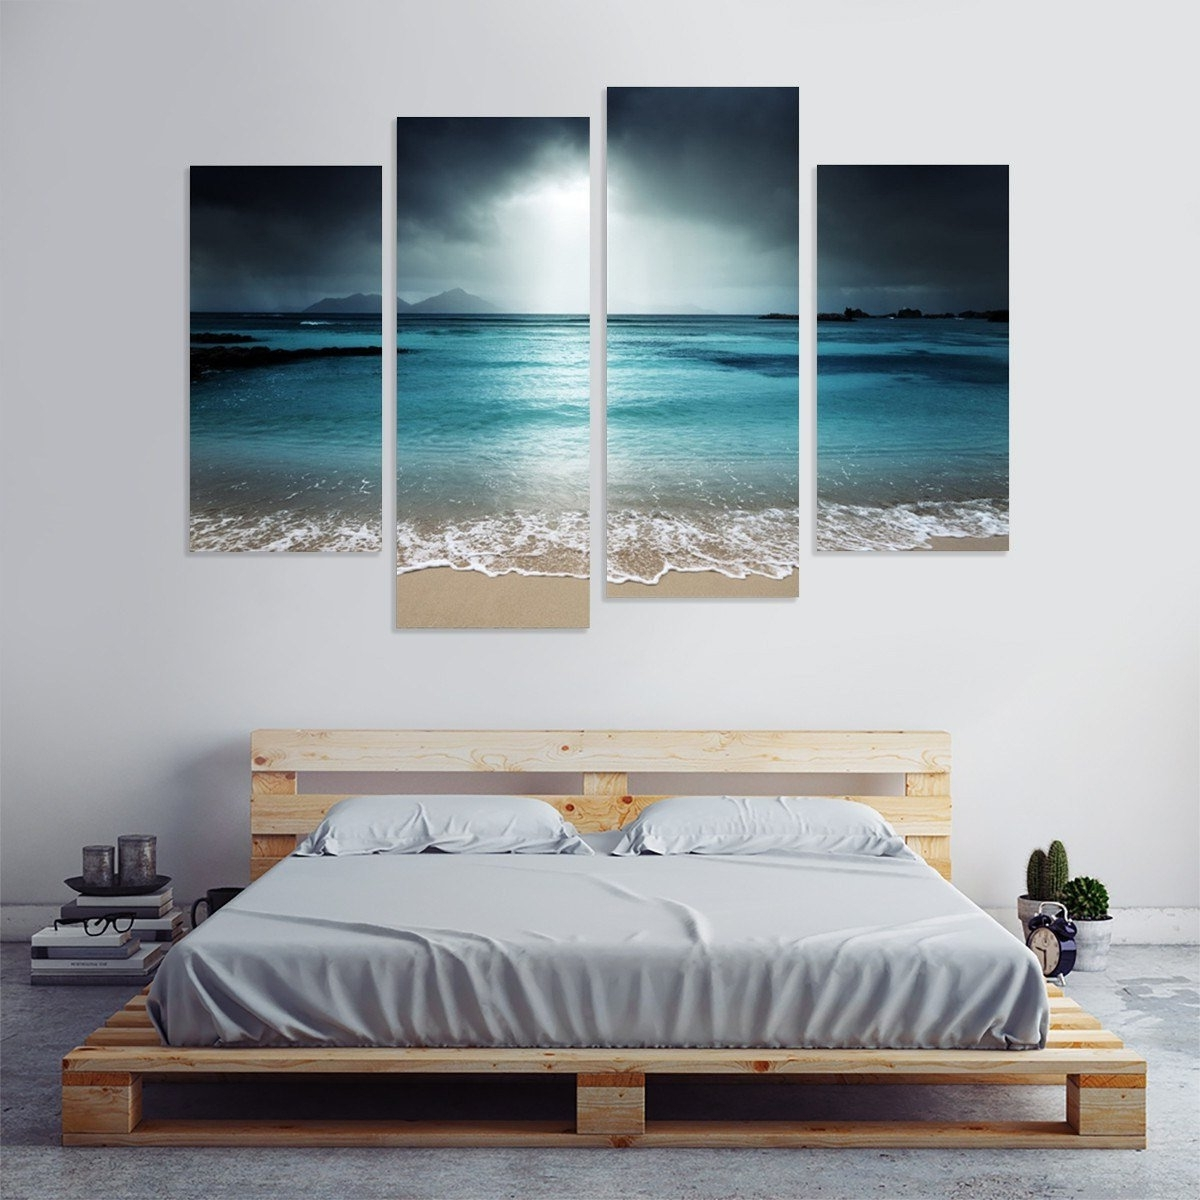 4 Piece Wall Art Sets Throughout Most Current Wall Art Designs 4 Piece Canvas Wall Art 4 Piece Wall Art Modern (Gallery 8 of 15)